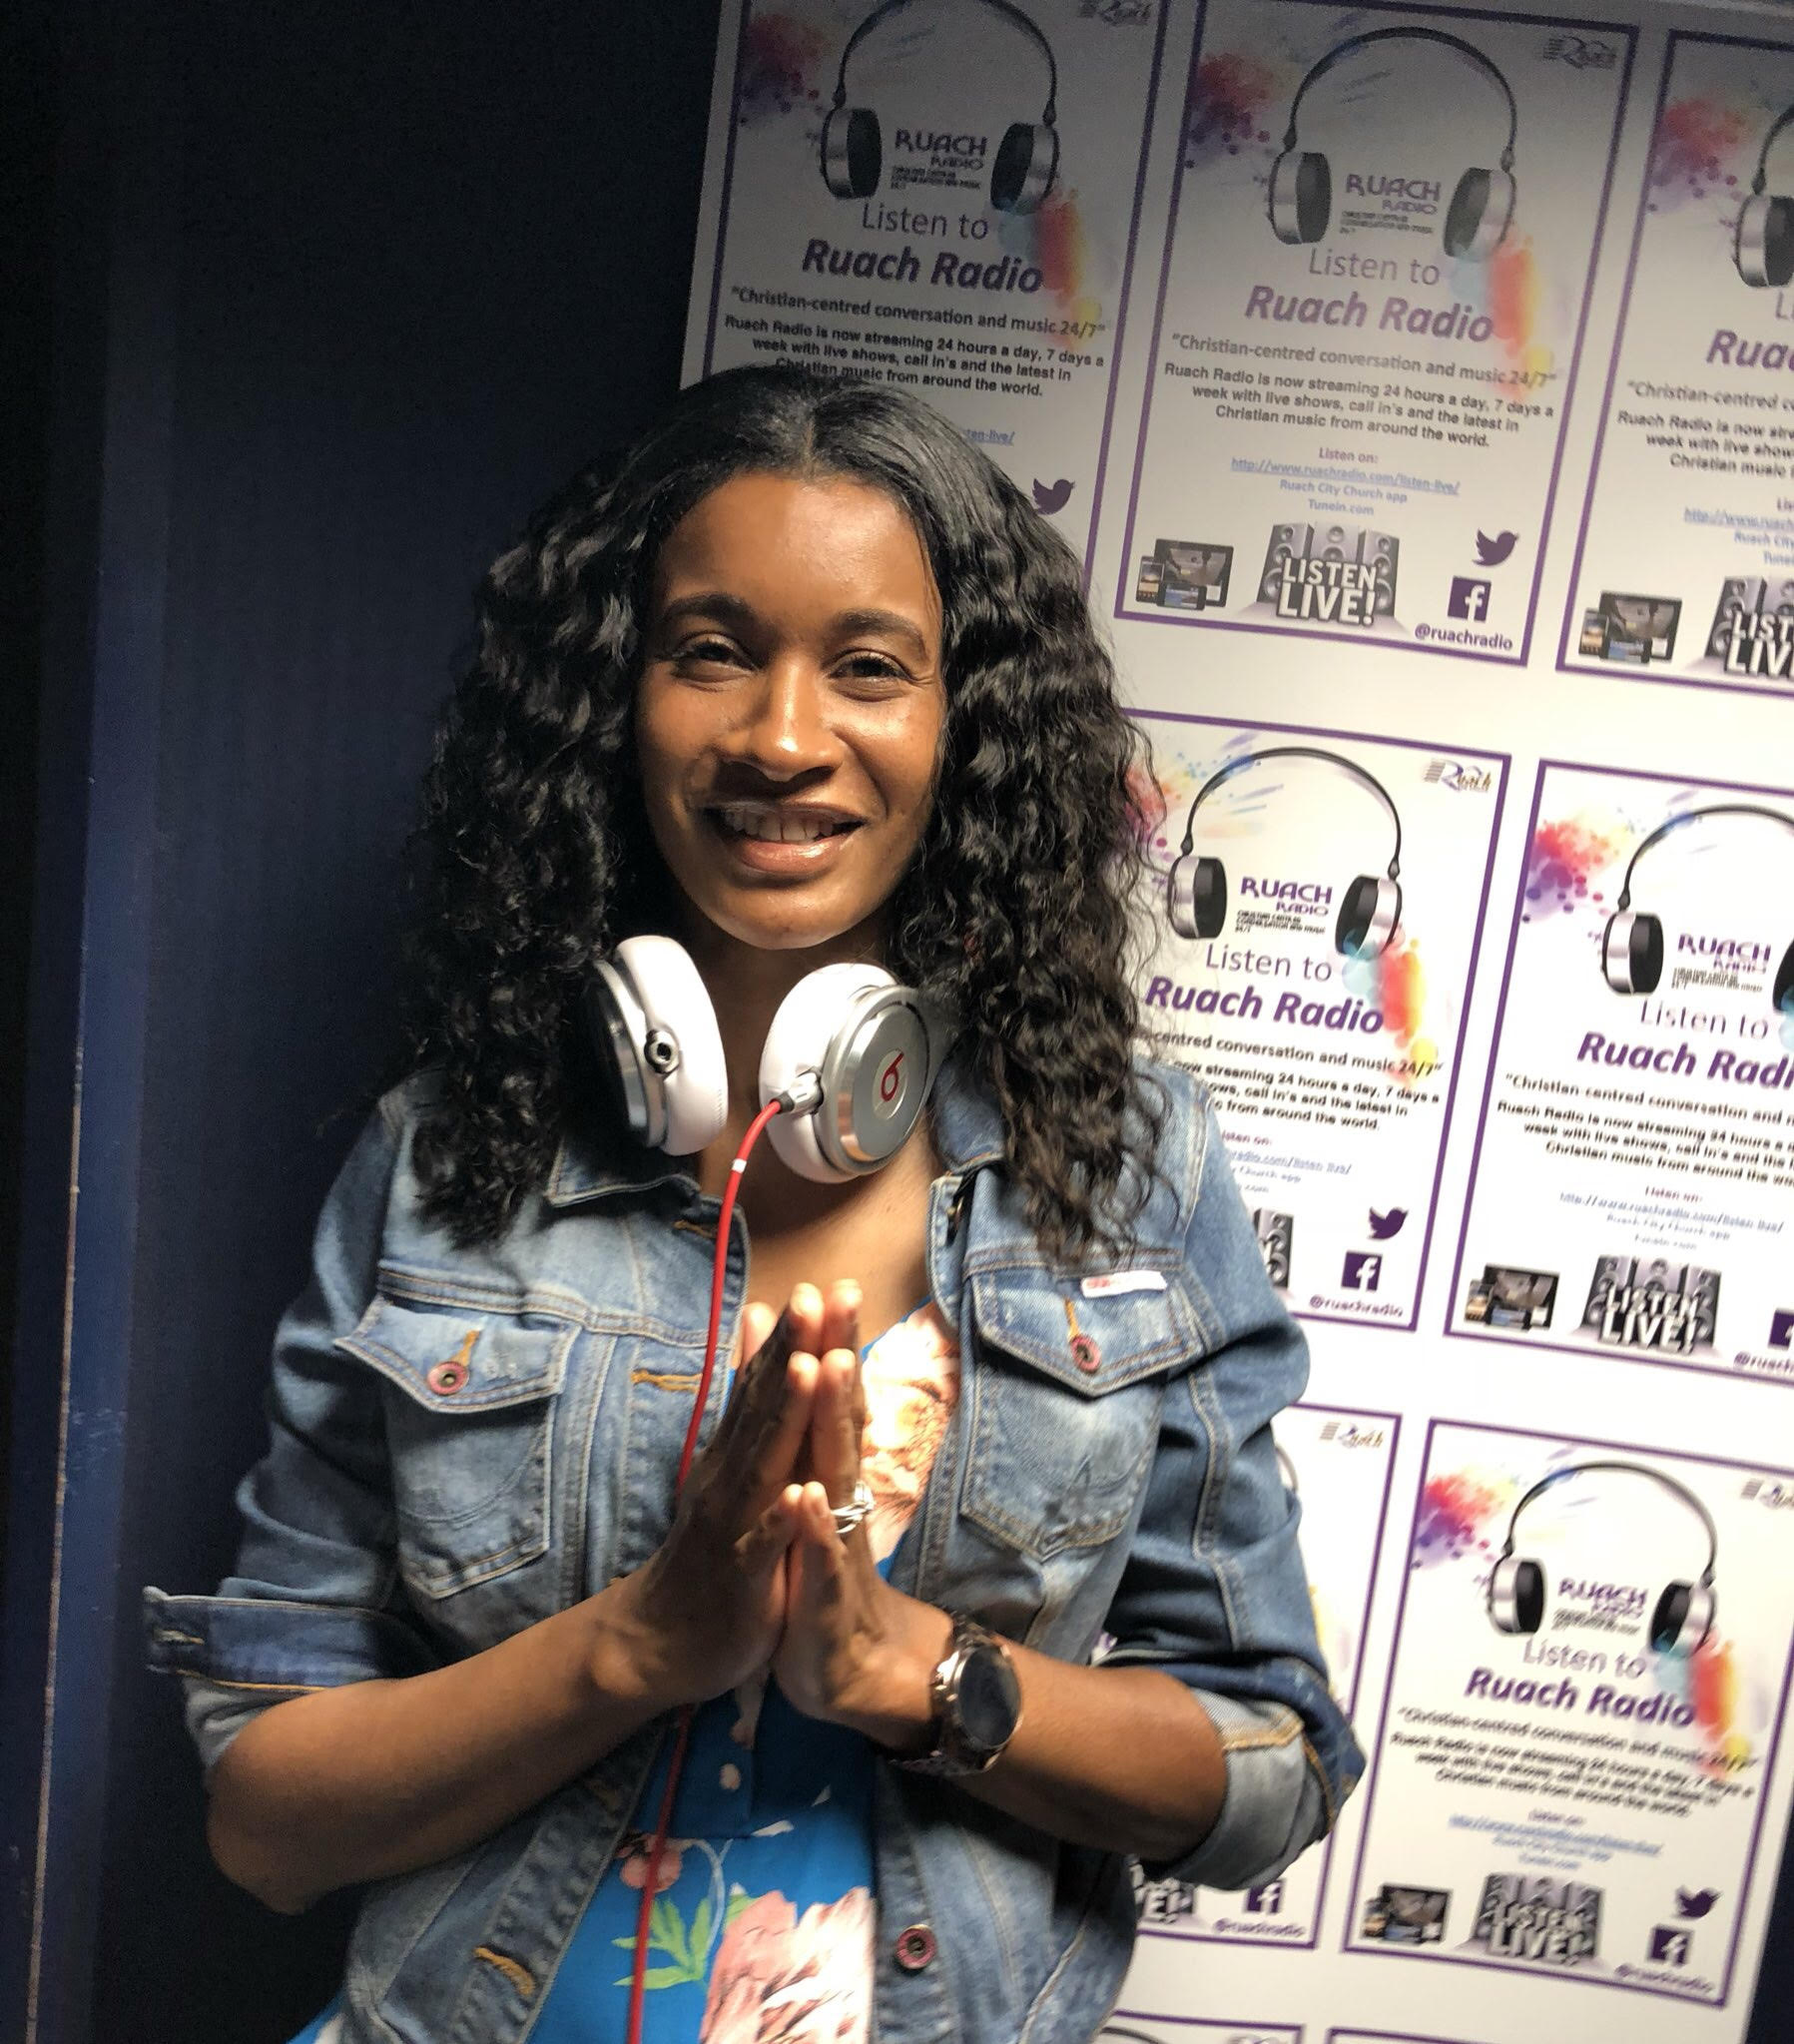 DJ Cass C at Ruach Radio